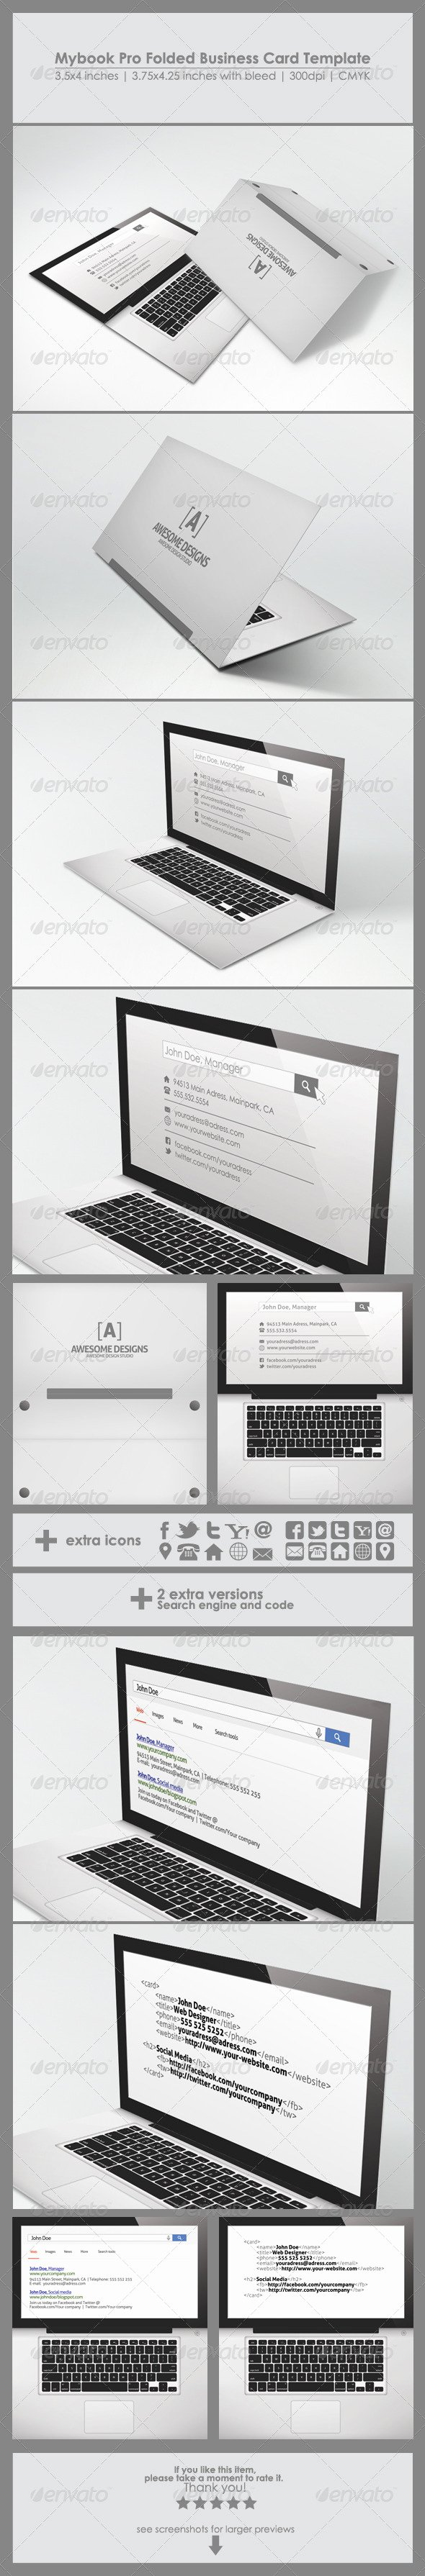 Folded Business Card Templates Luxury Mybook Pro Folded Business Card Template